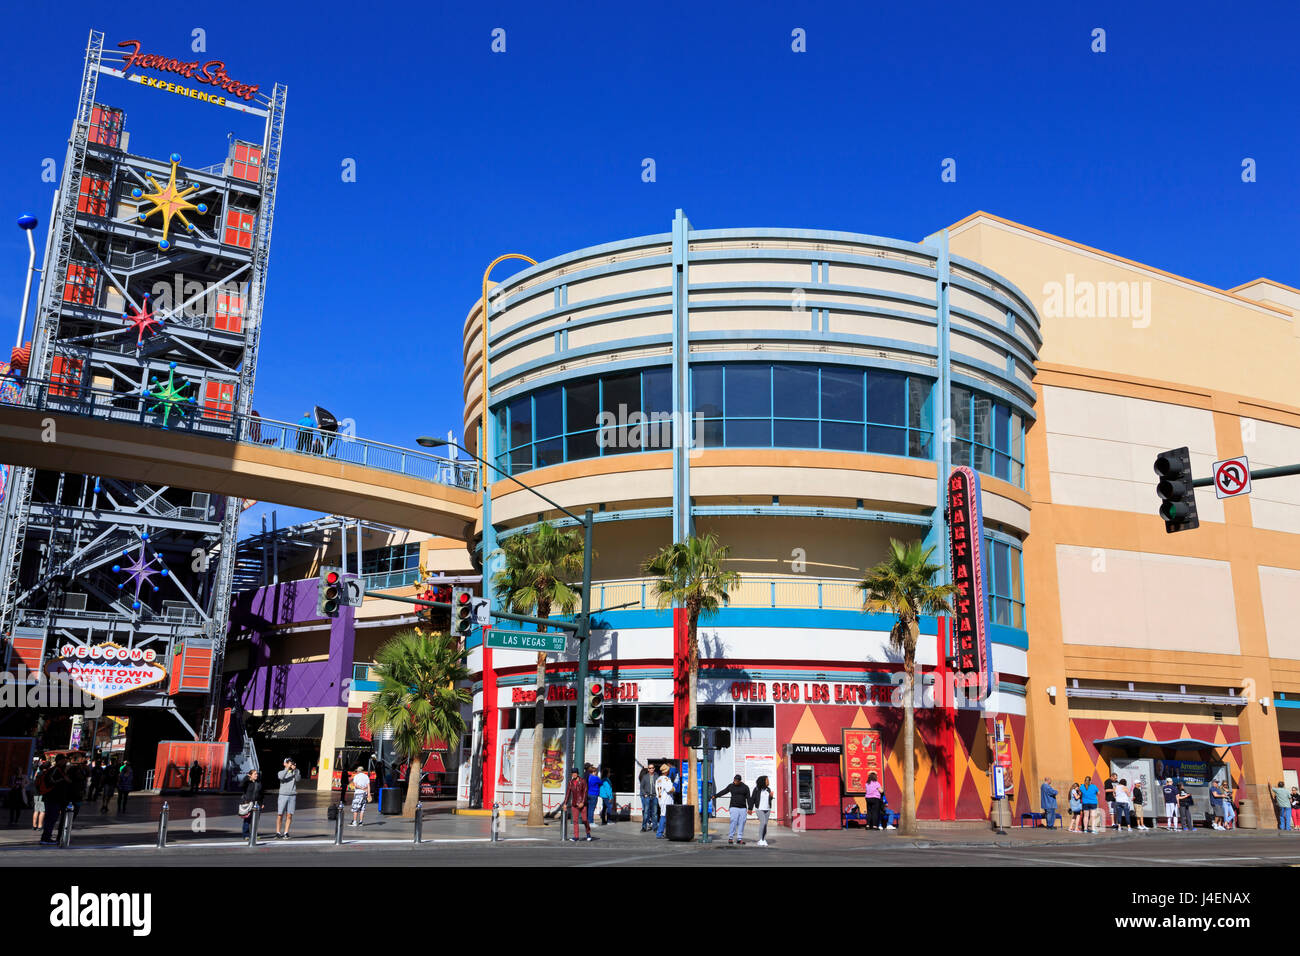 Fremont Street, Las Vegas, Nevada, United States of America, North America Stock Photo